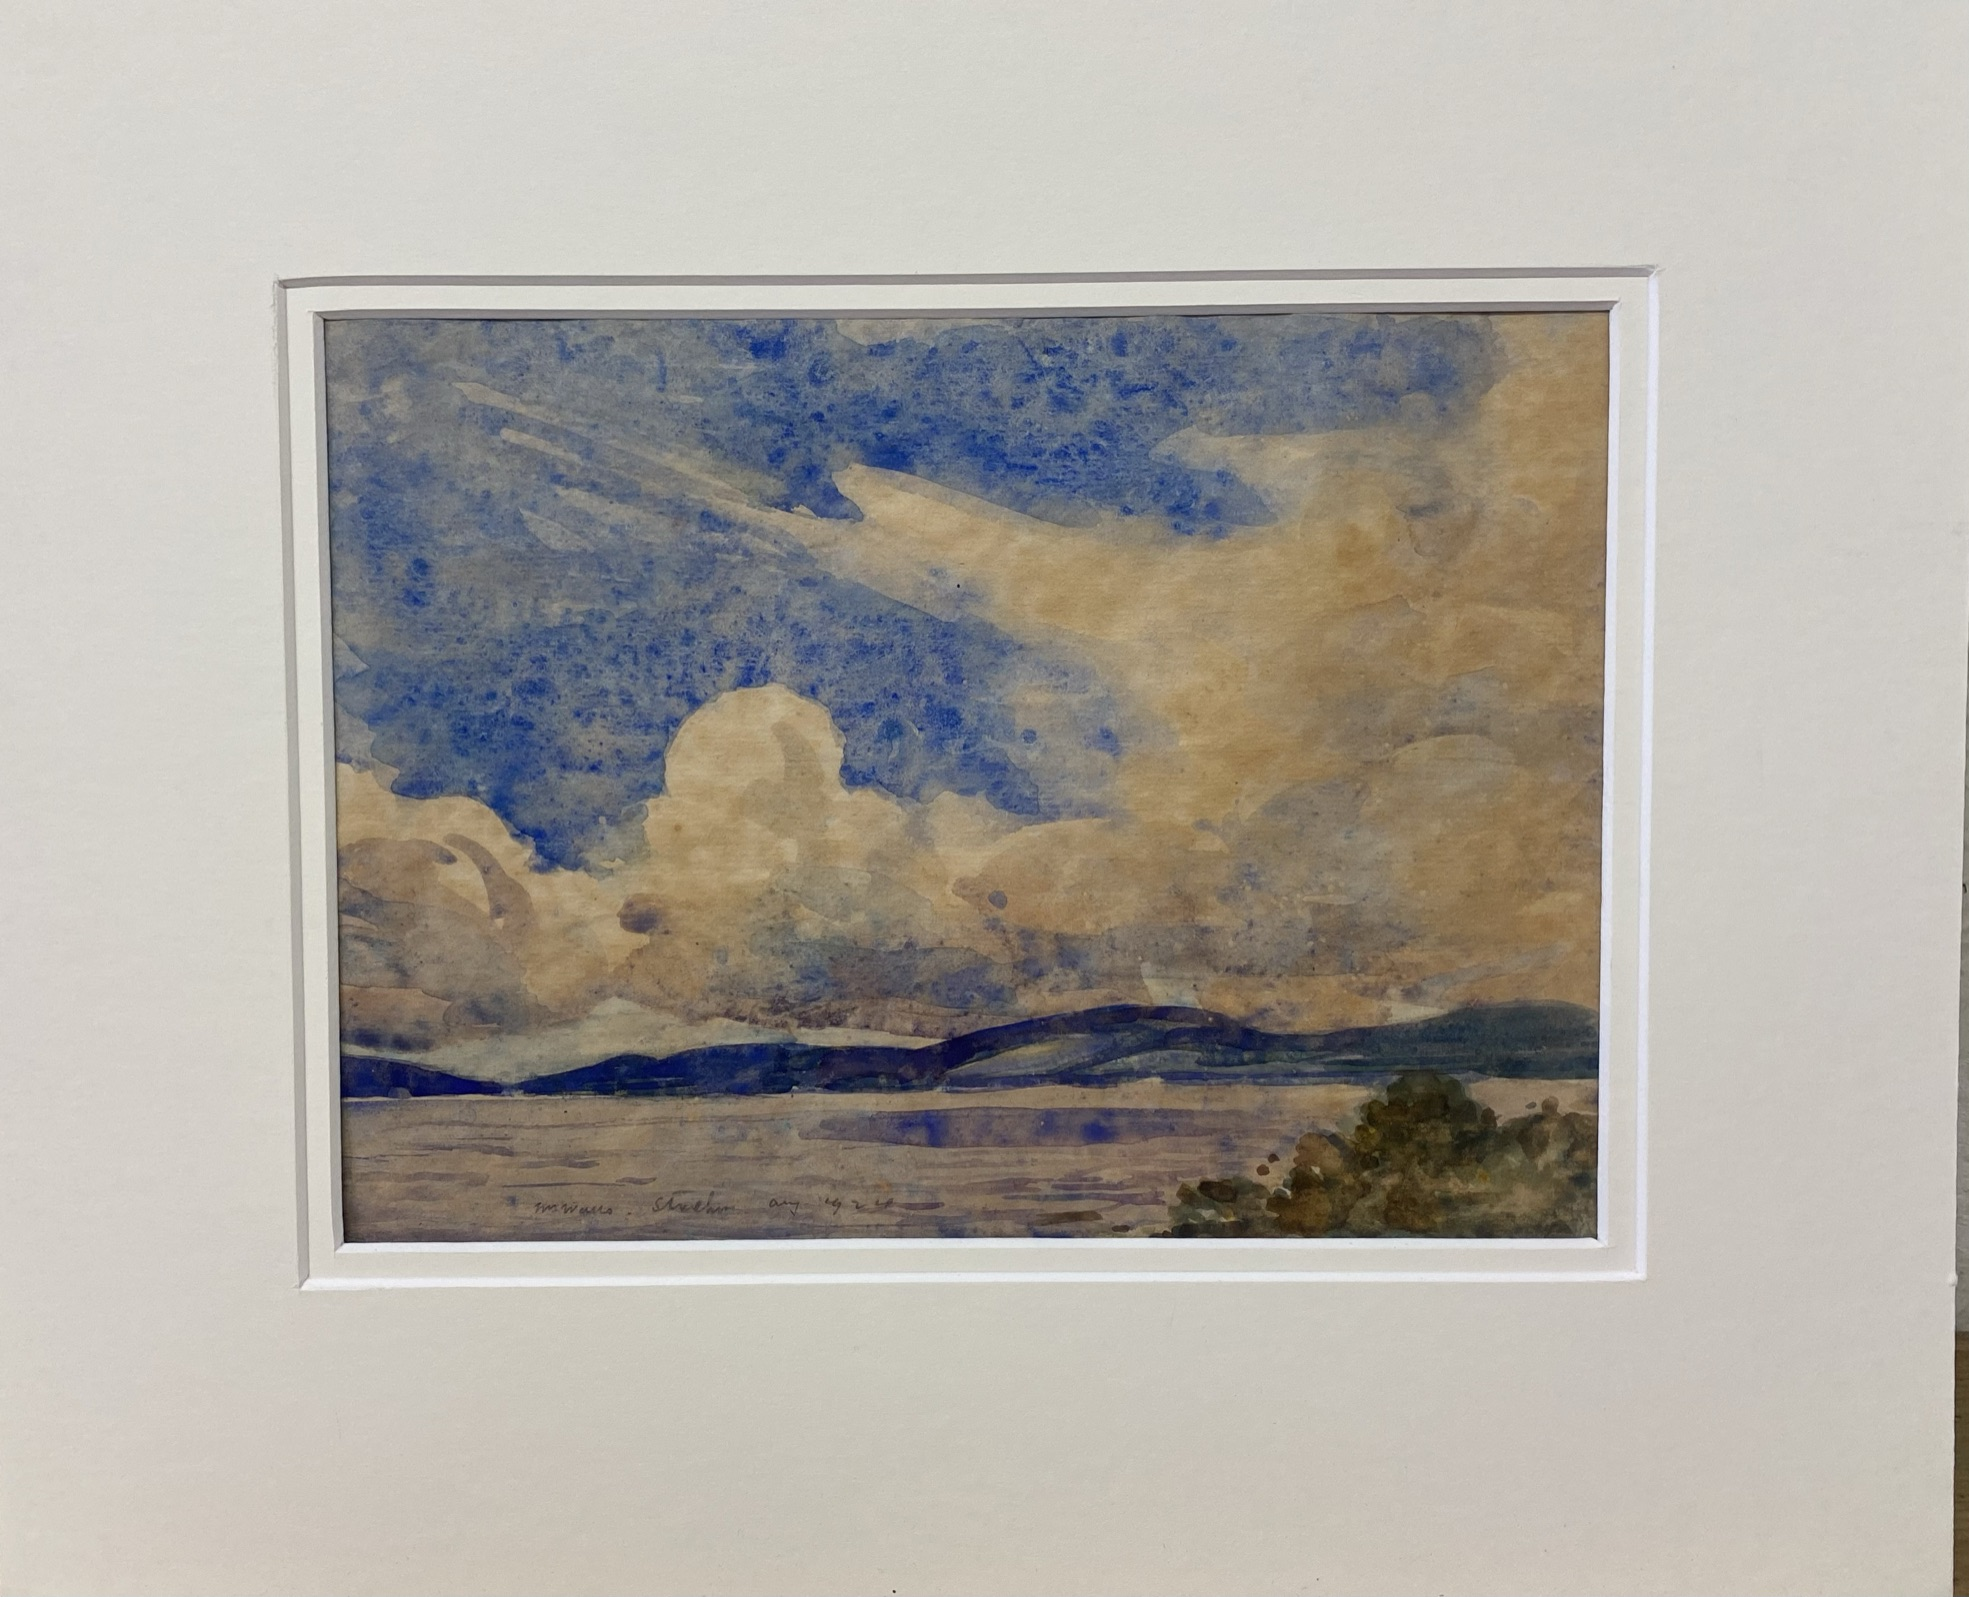 """William Walls 1860-1942 ARSA, RSW, RSA signed watercolour """"Cloudy day Strathcurr"""" - Image 2 of 4"""